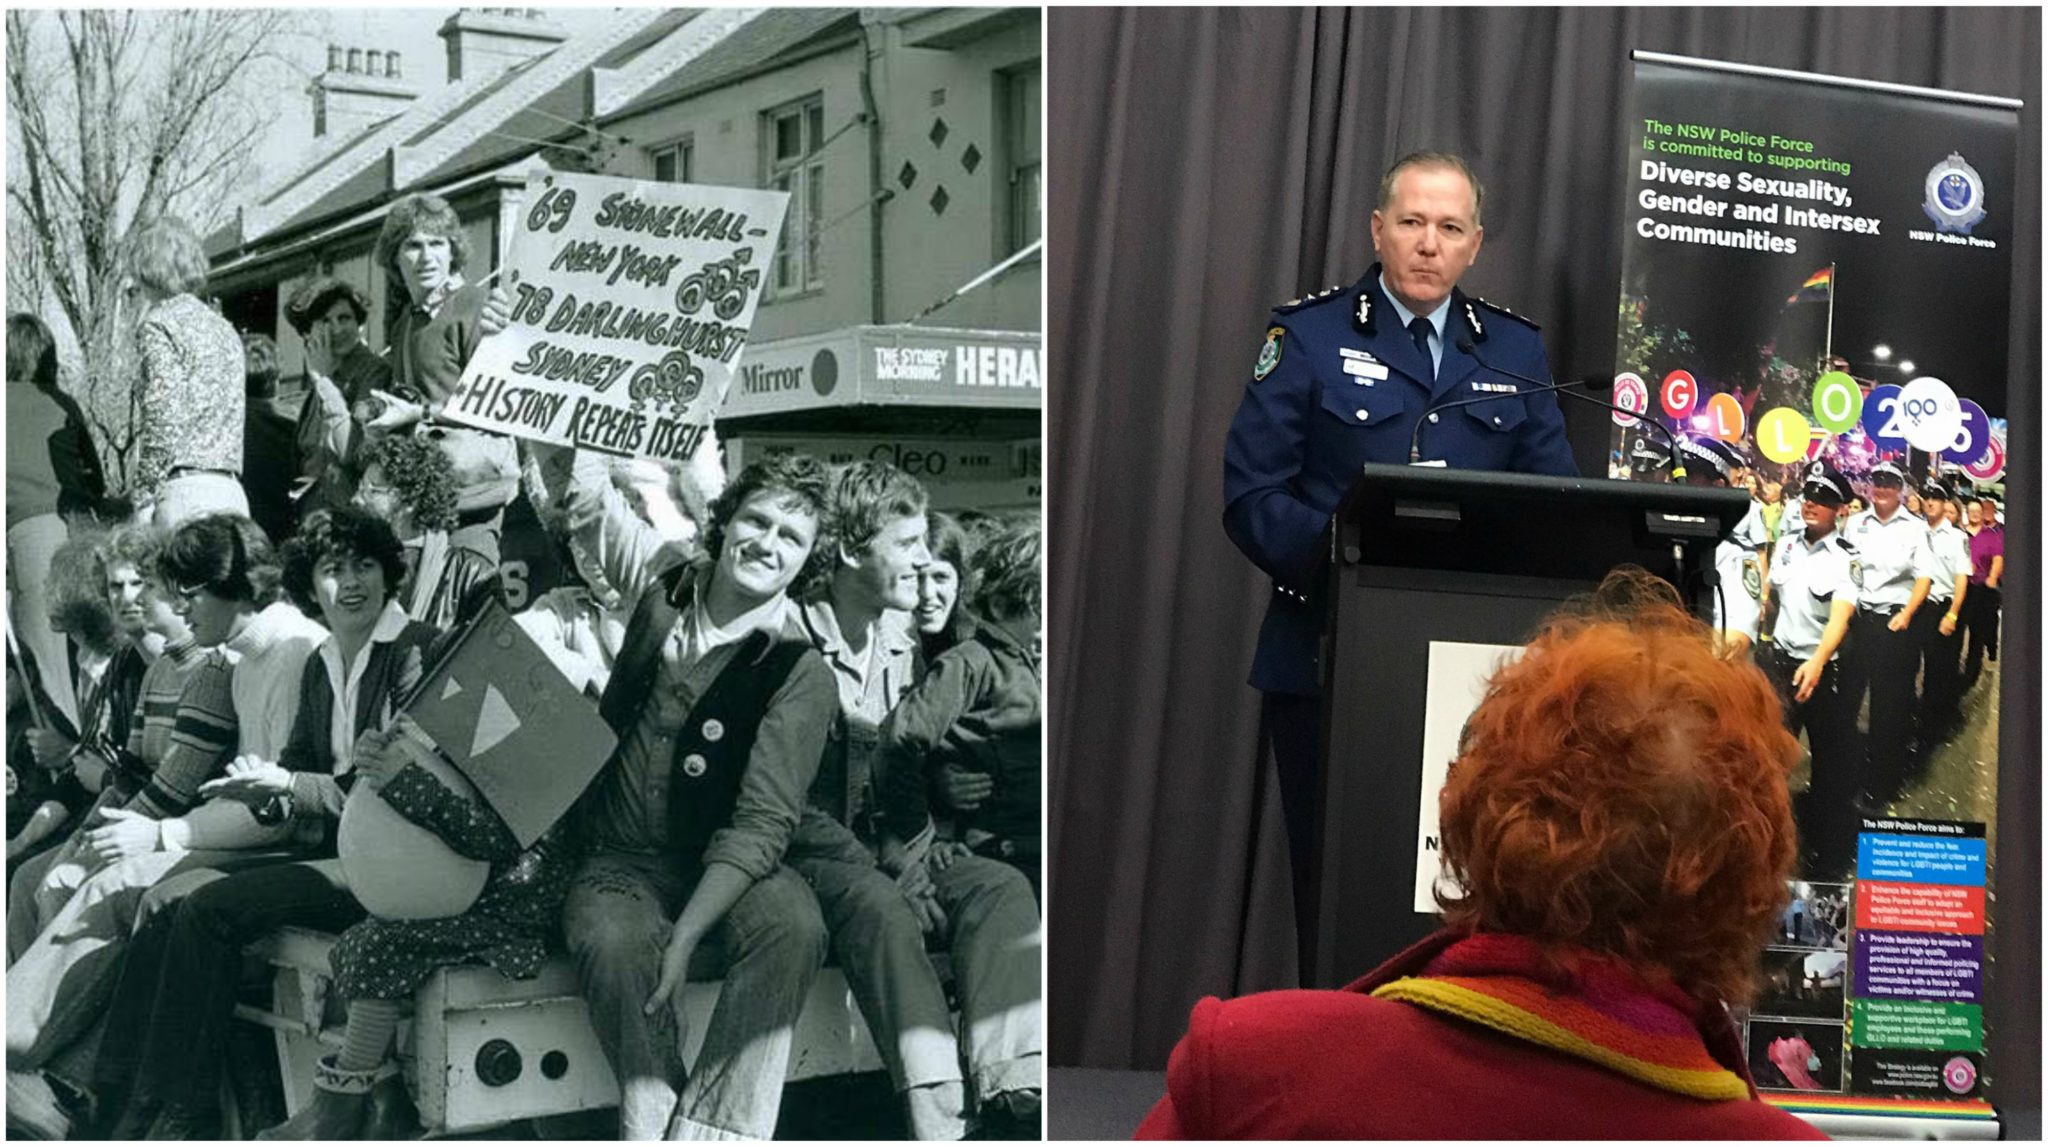 two photos.on the left is a black and white photo with revellers sitting on the back of a pickup truck smiling and holding signs. the one of the right is of a police commissioner standing at a lectern